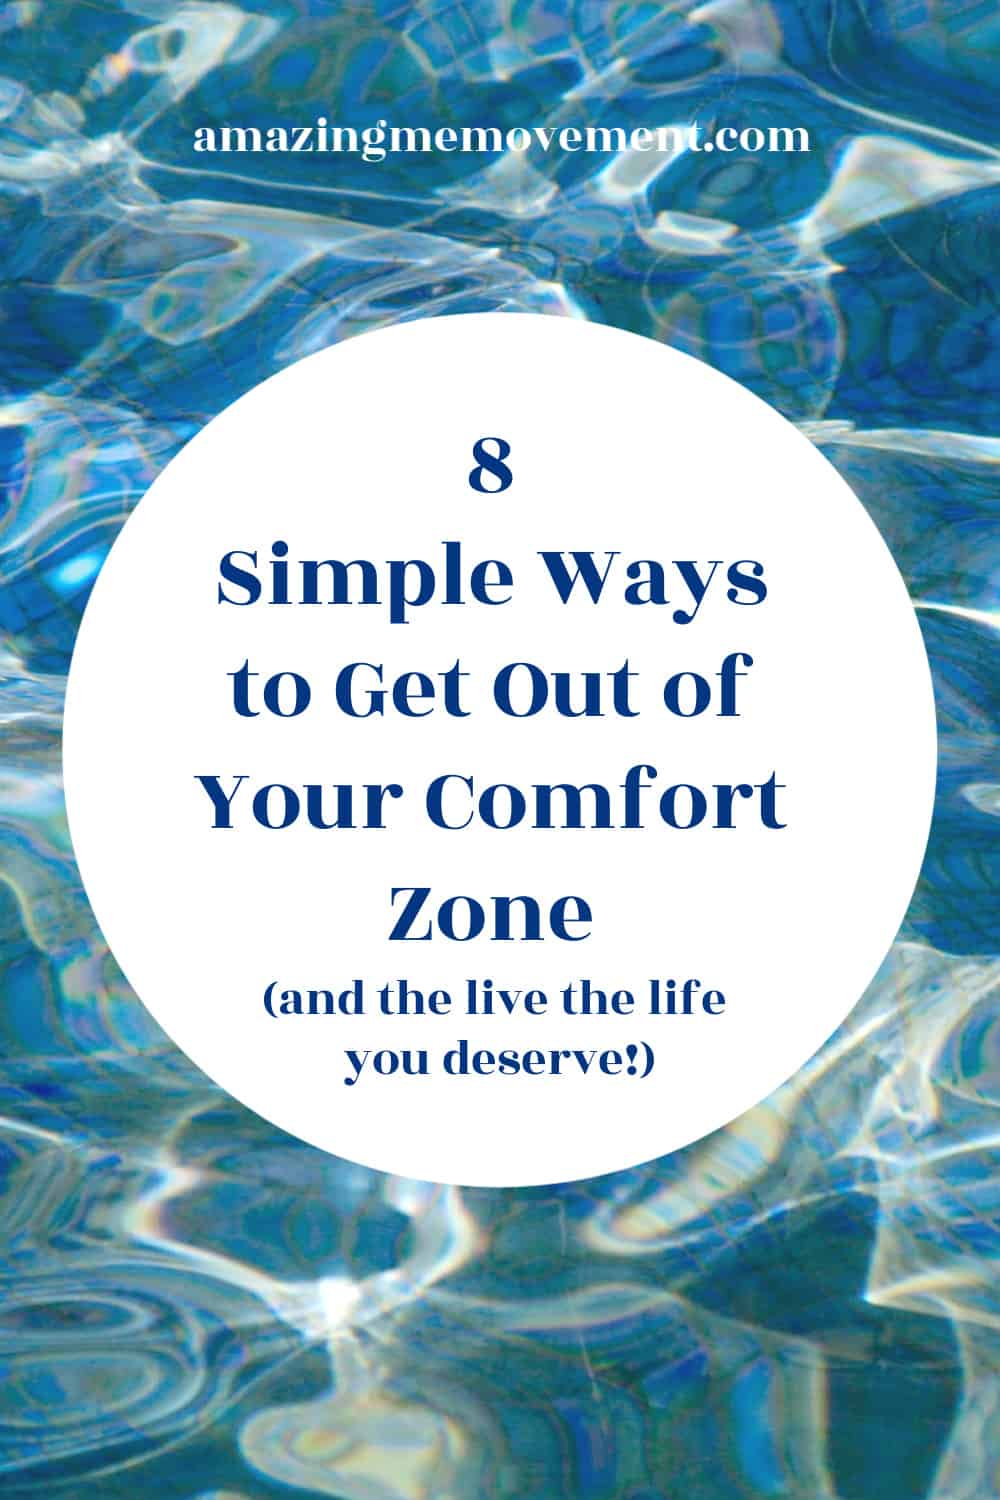 8 ways to get out of your comfort zone